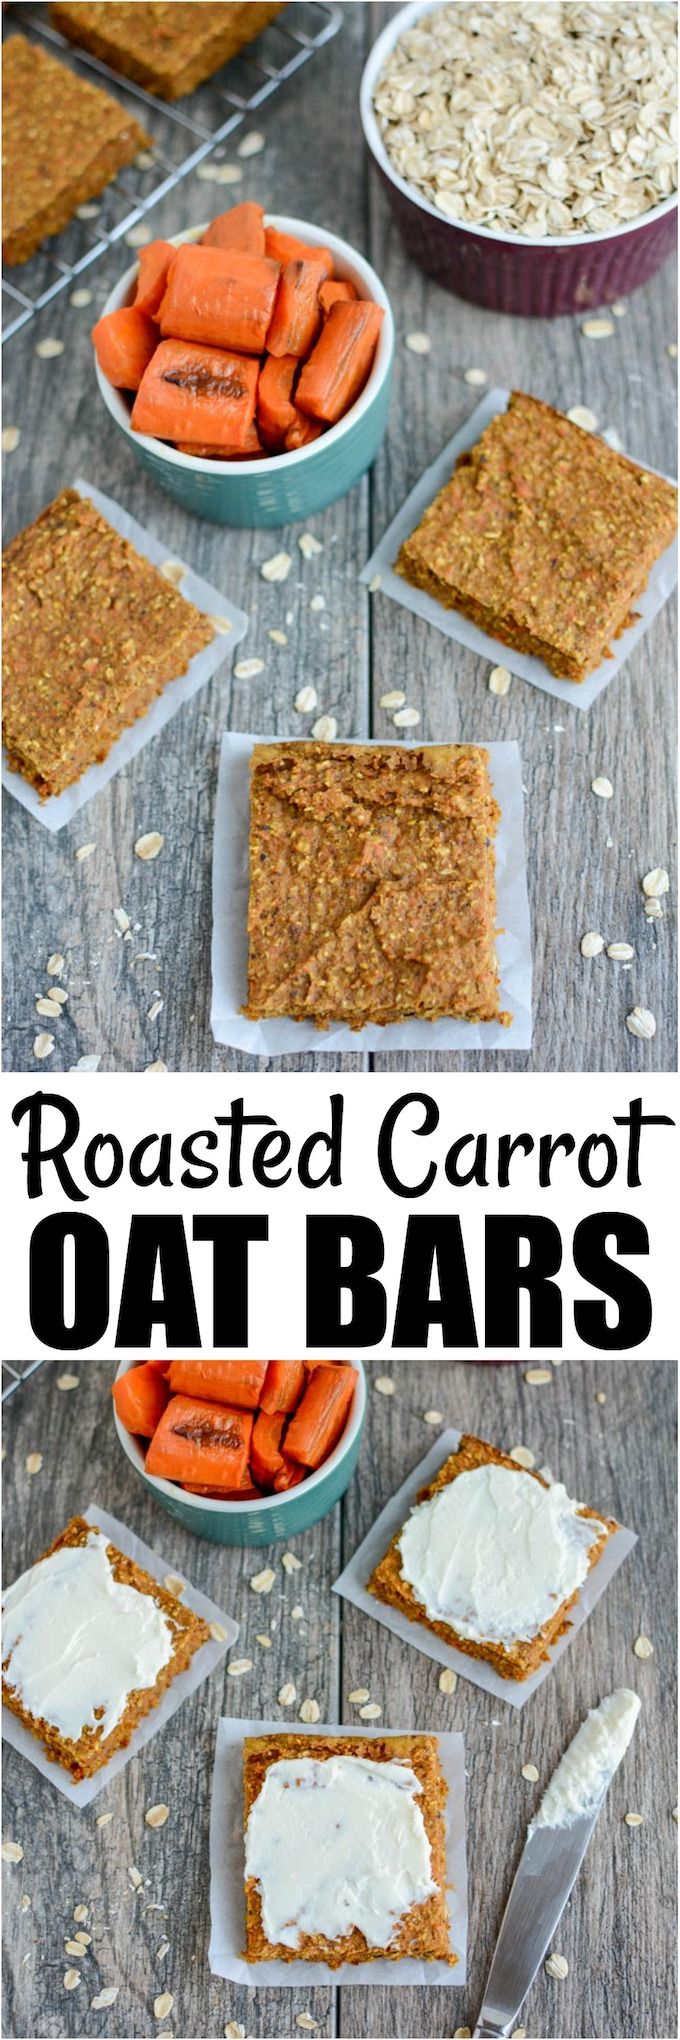 Carrot Oat Bars is part of Healthy snacks - These Carrot Oat Bars make the perfect healthy snack  They're dense, chewy and easy to make in the blender  Plus they're kidfriendly and also make a great addition to breakfasts and lunches